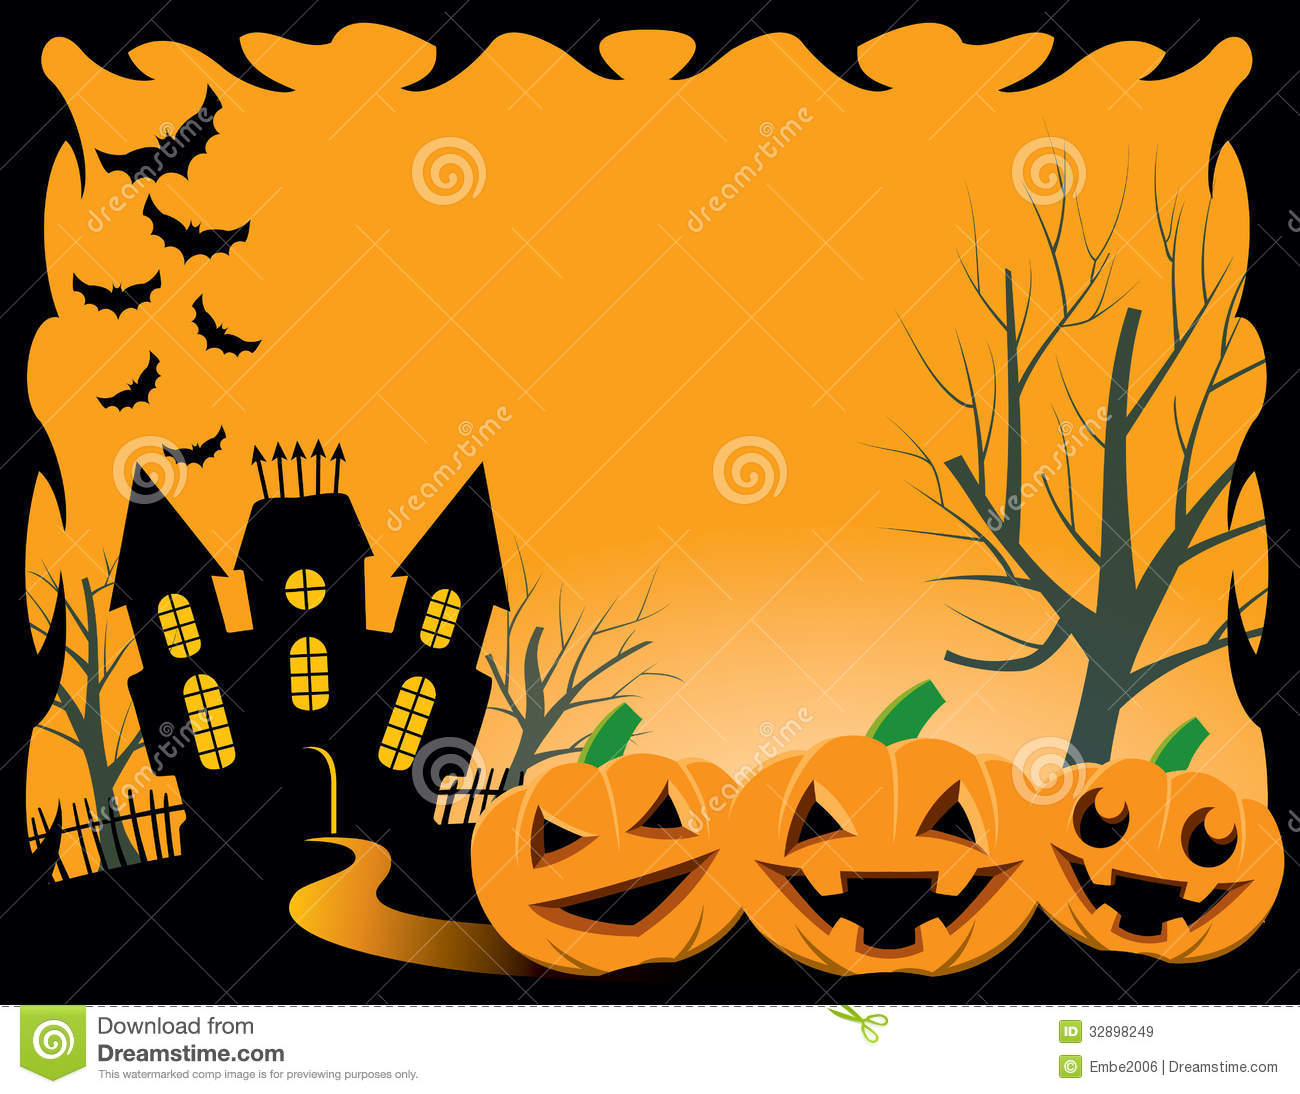 Halloween Background Royalty Free Stock Images.